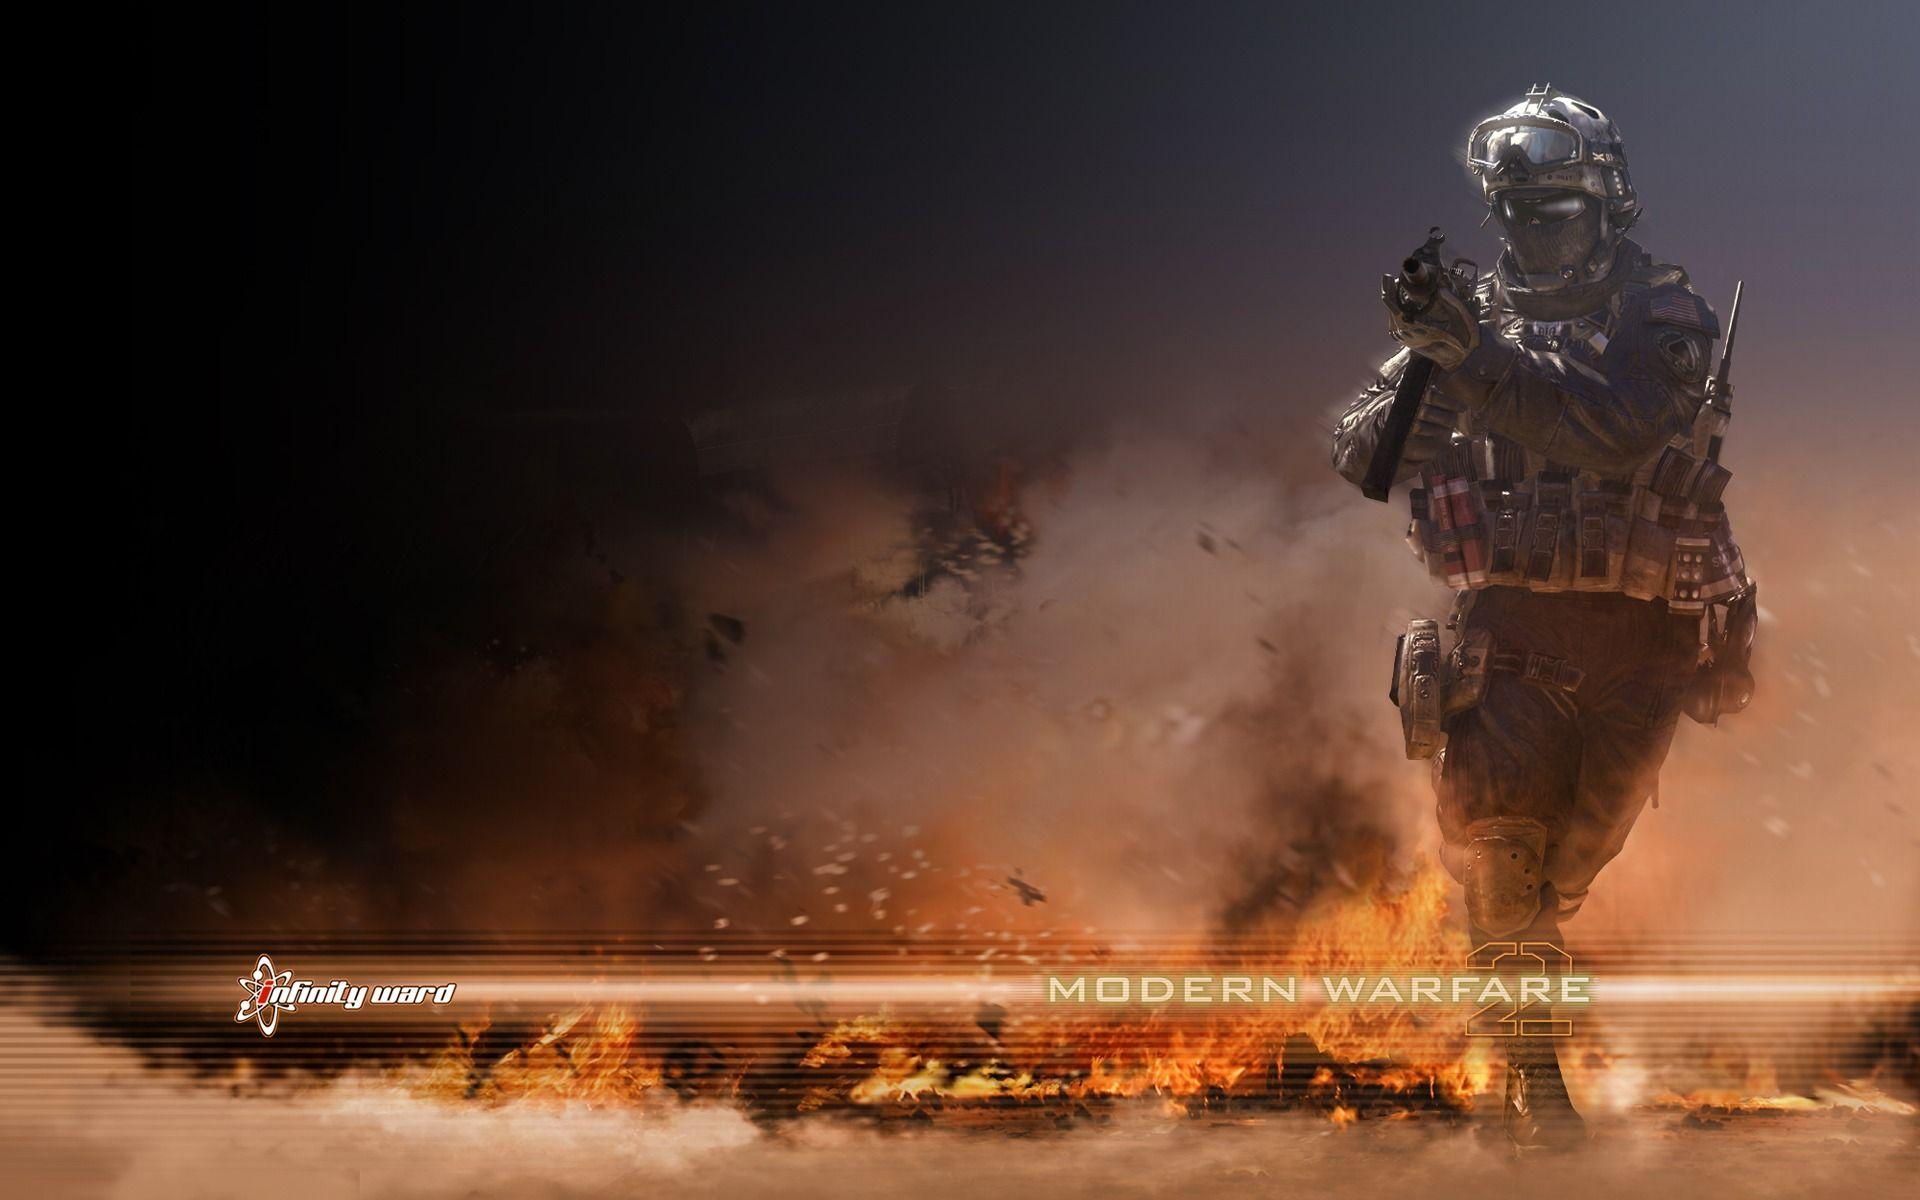 3d wallpaper call of duty wallpapers for free download about ...